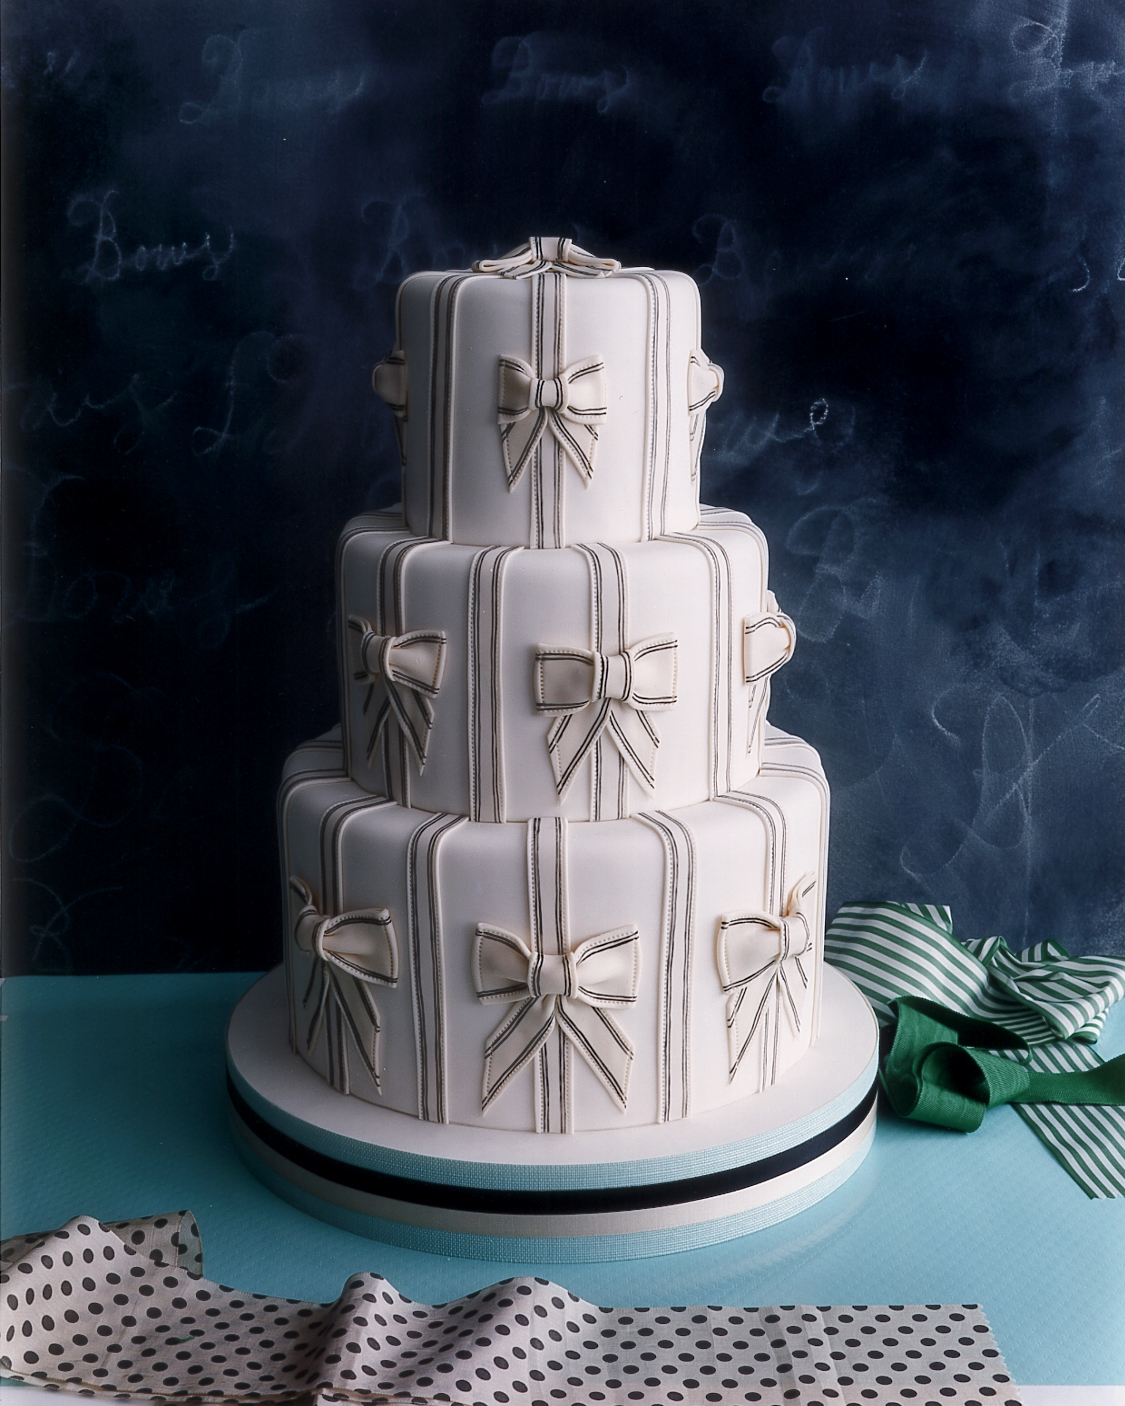 weddings-wa101750-bowcake.jpg